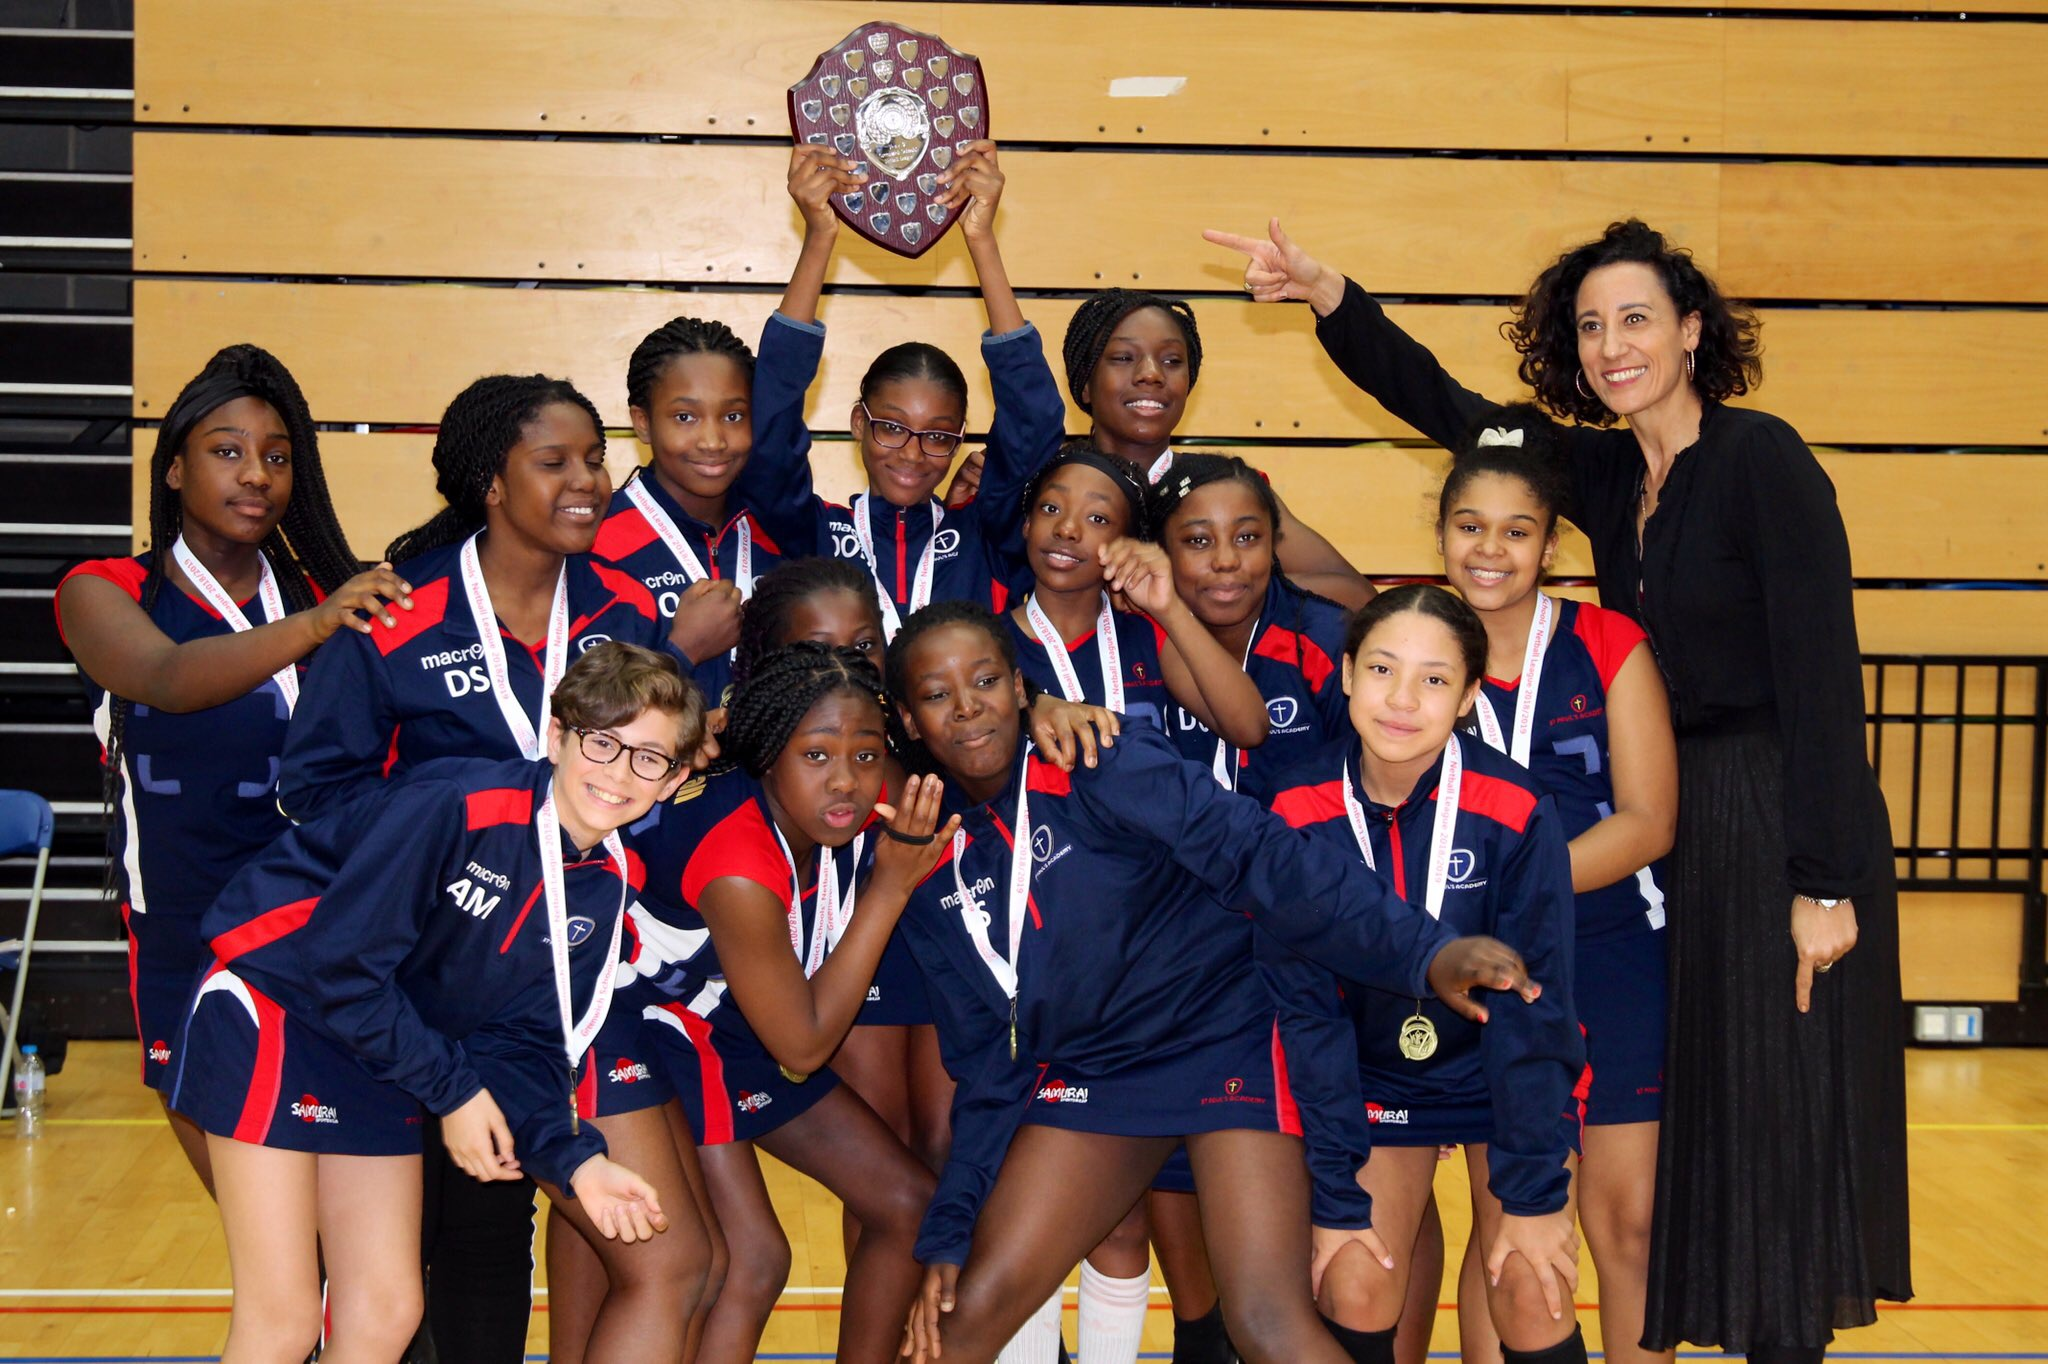 Greenwich Schools' Netball League